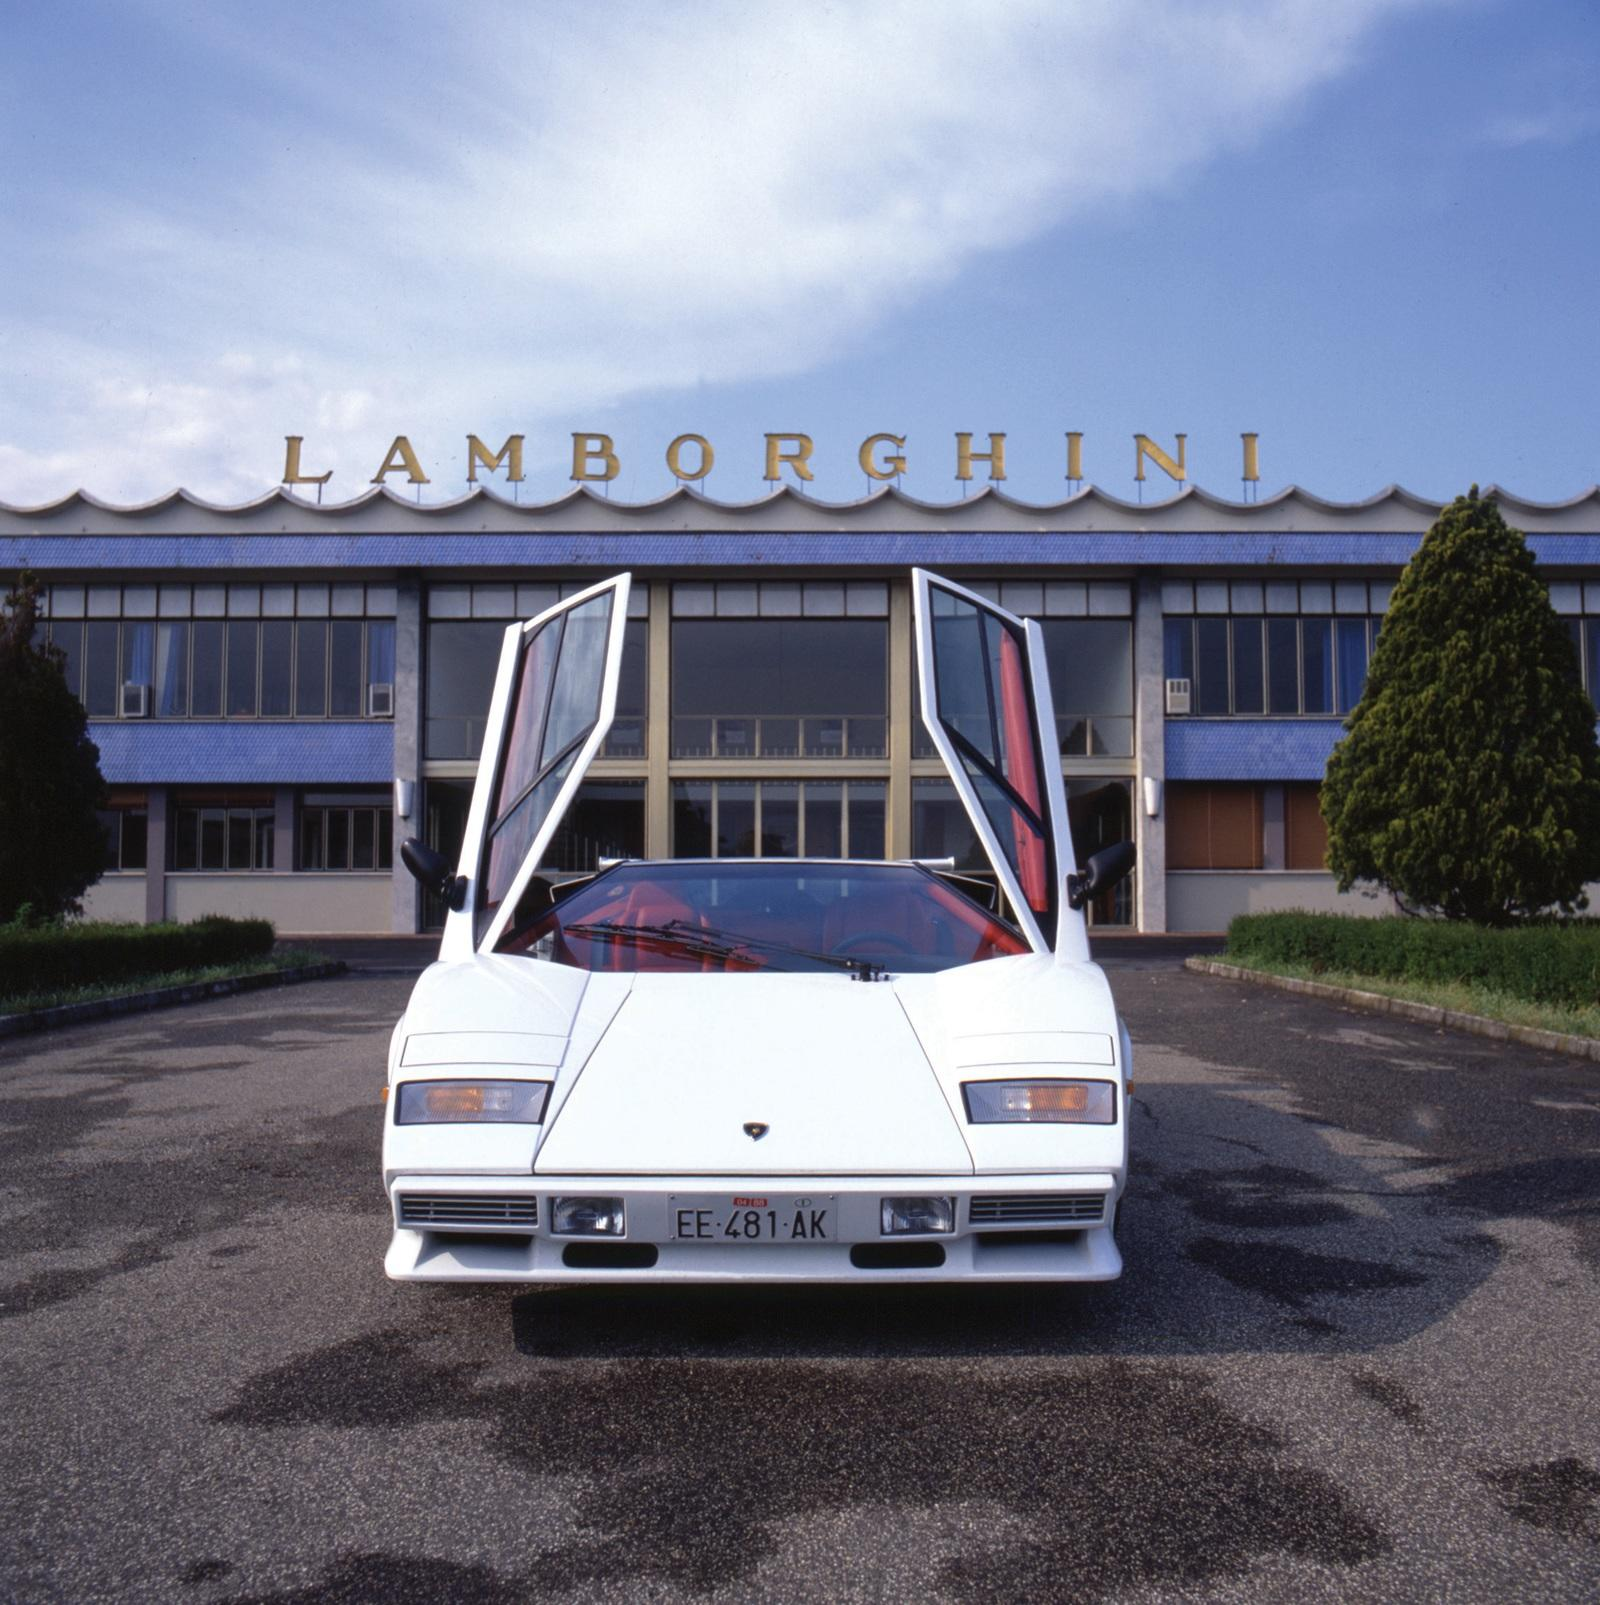 Lamborghini Countach Latest News Reviews Specifications Prices